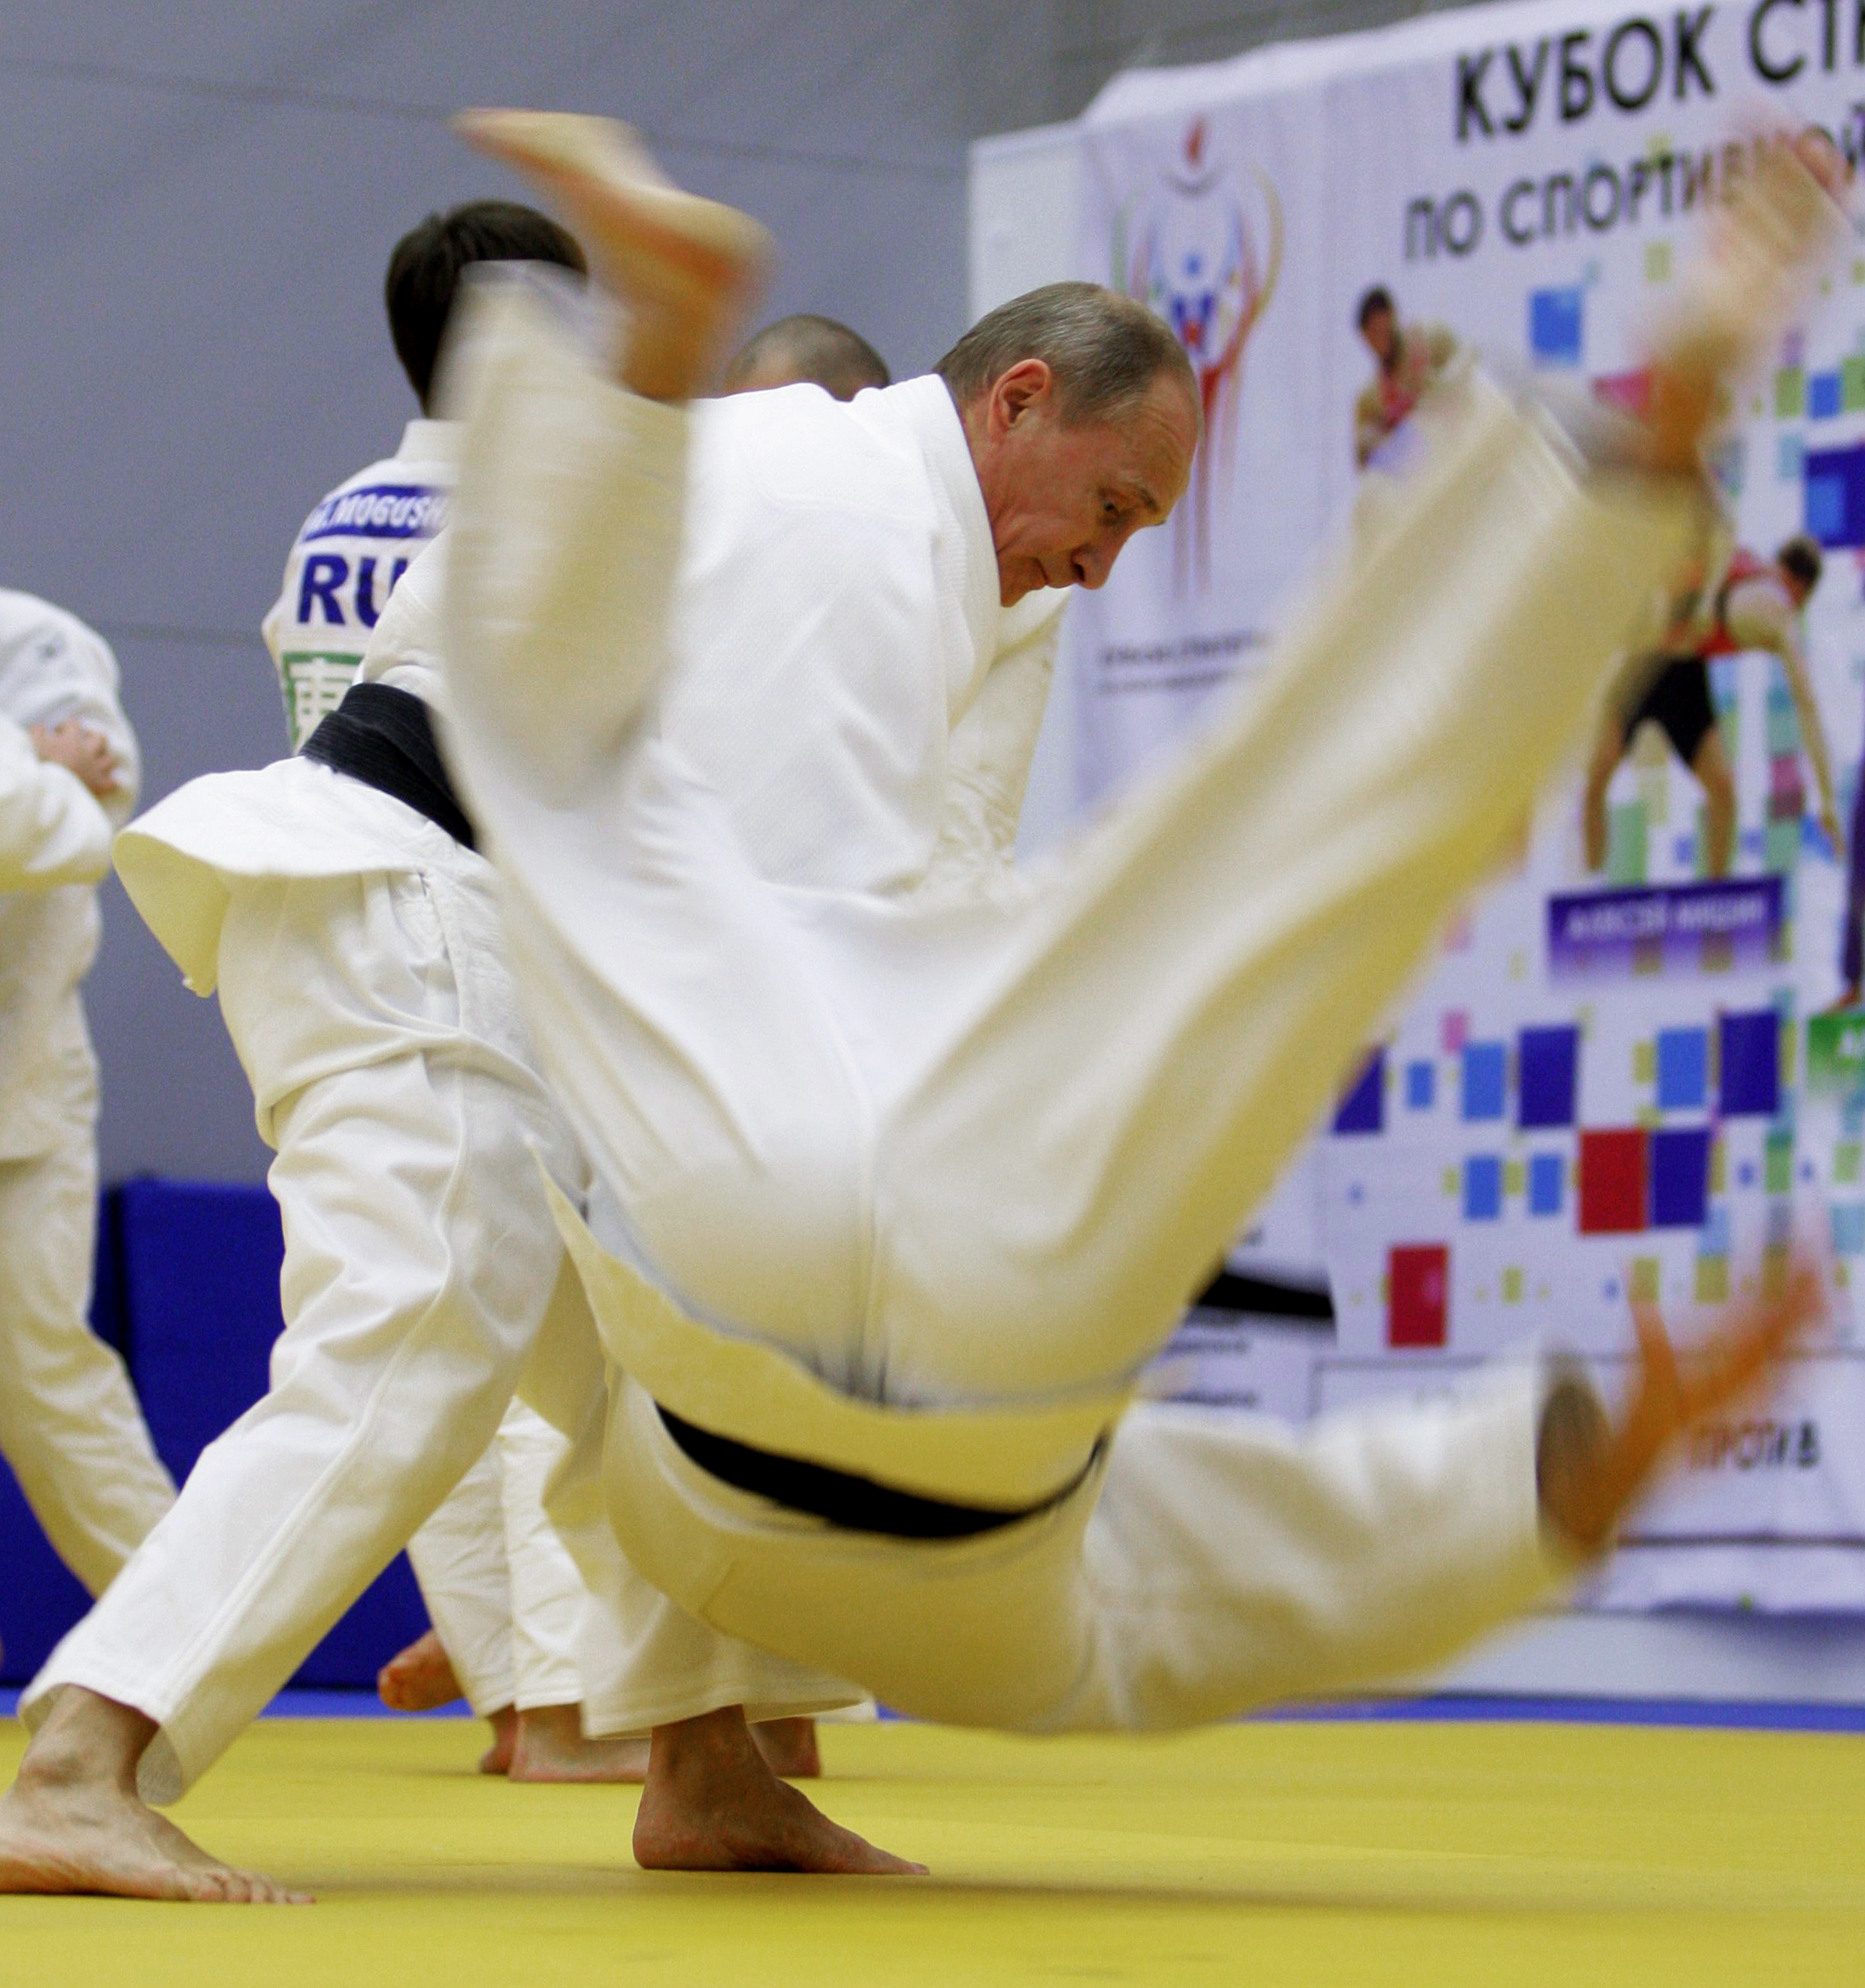 Vladimir Putin taking part in a judo training session in St. Petersburg, 2010. (Credit: Alexey Druzhinin/AFP/Getty Images)